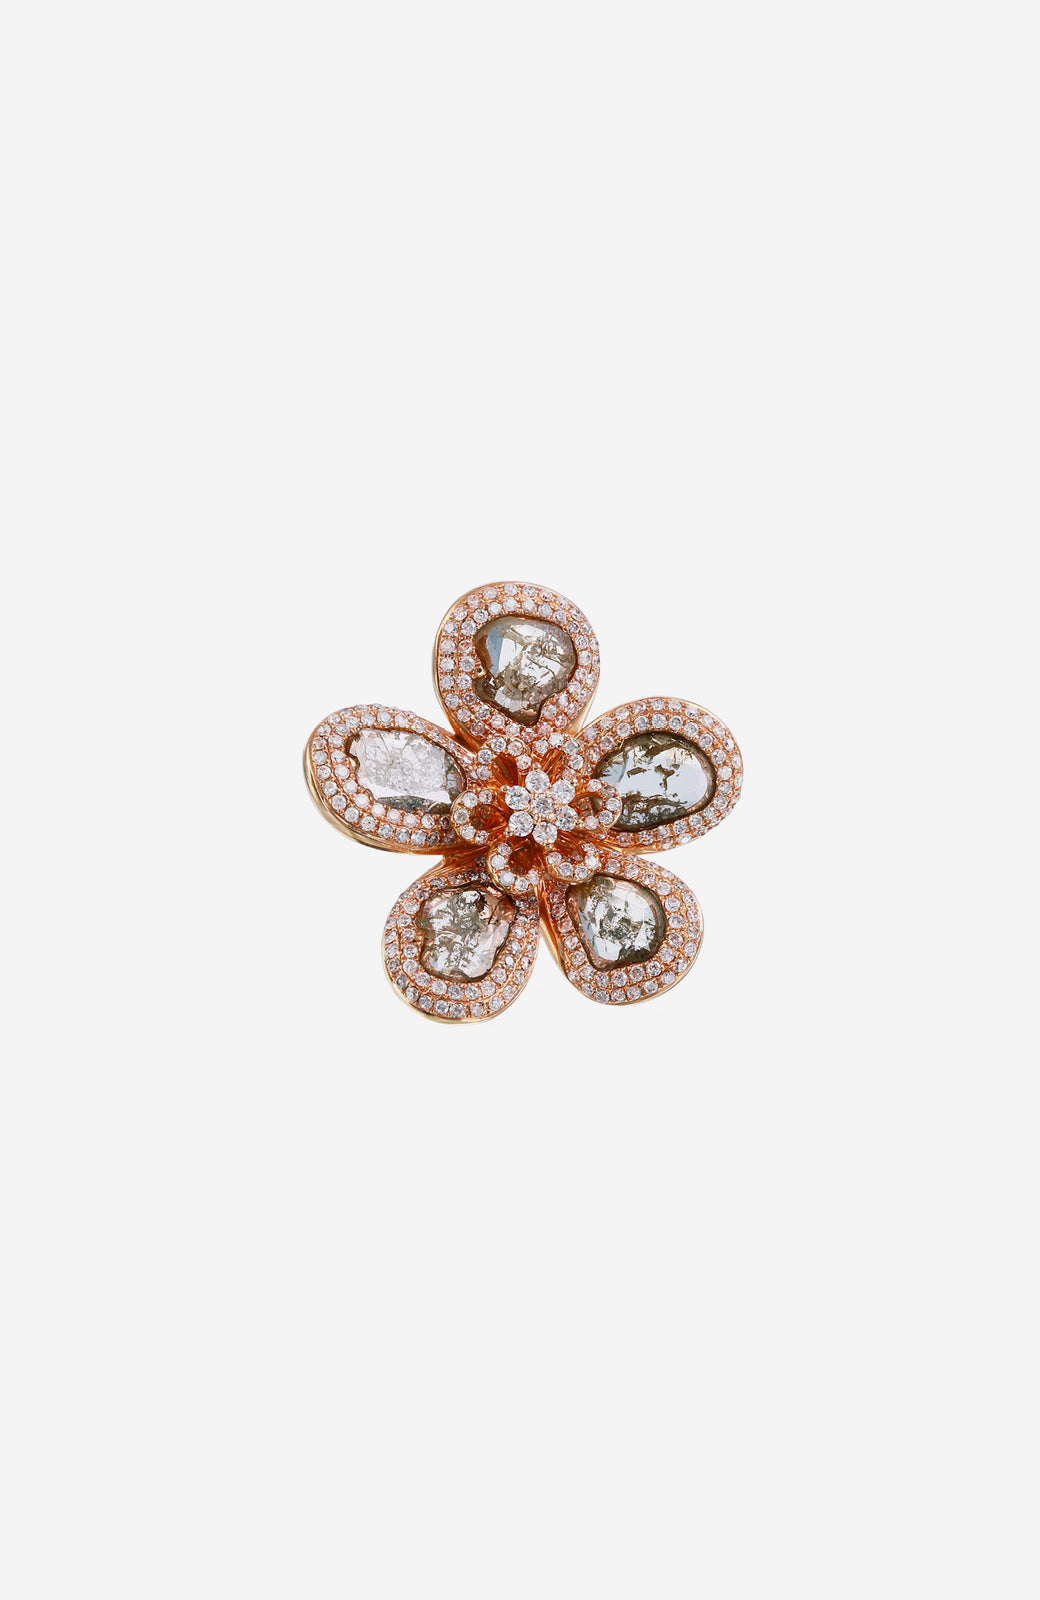 Rose Gold Slice Diamond Flower Earrings with Pave Diamonds